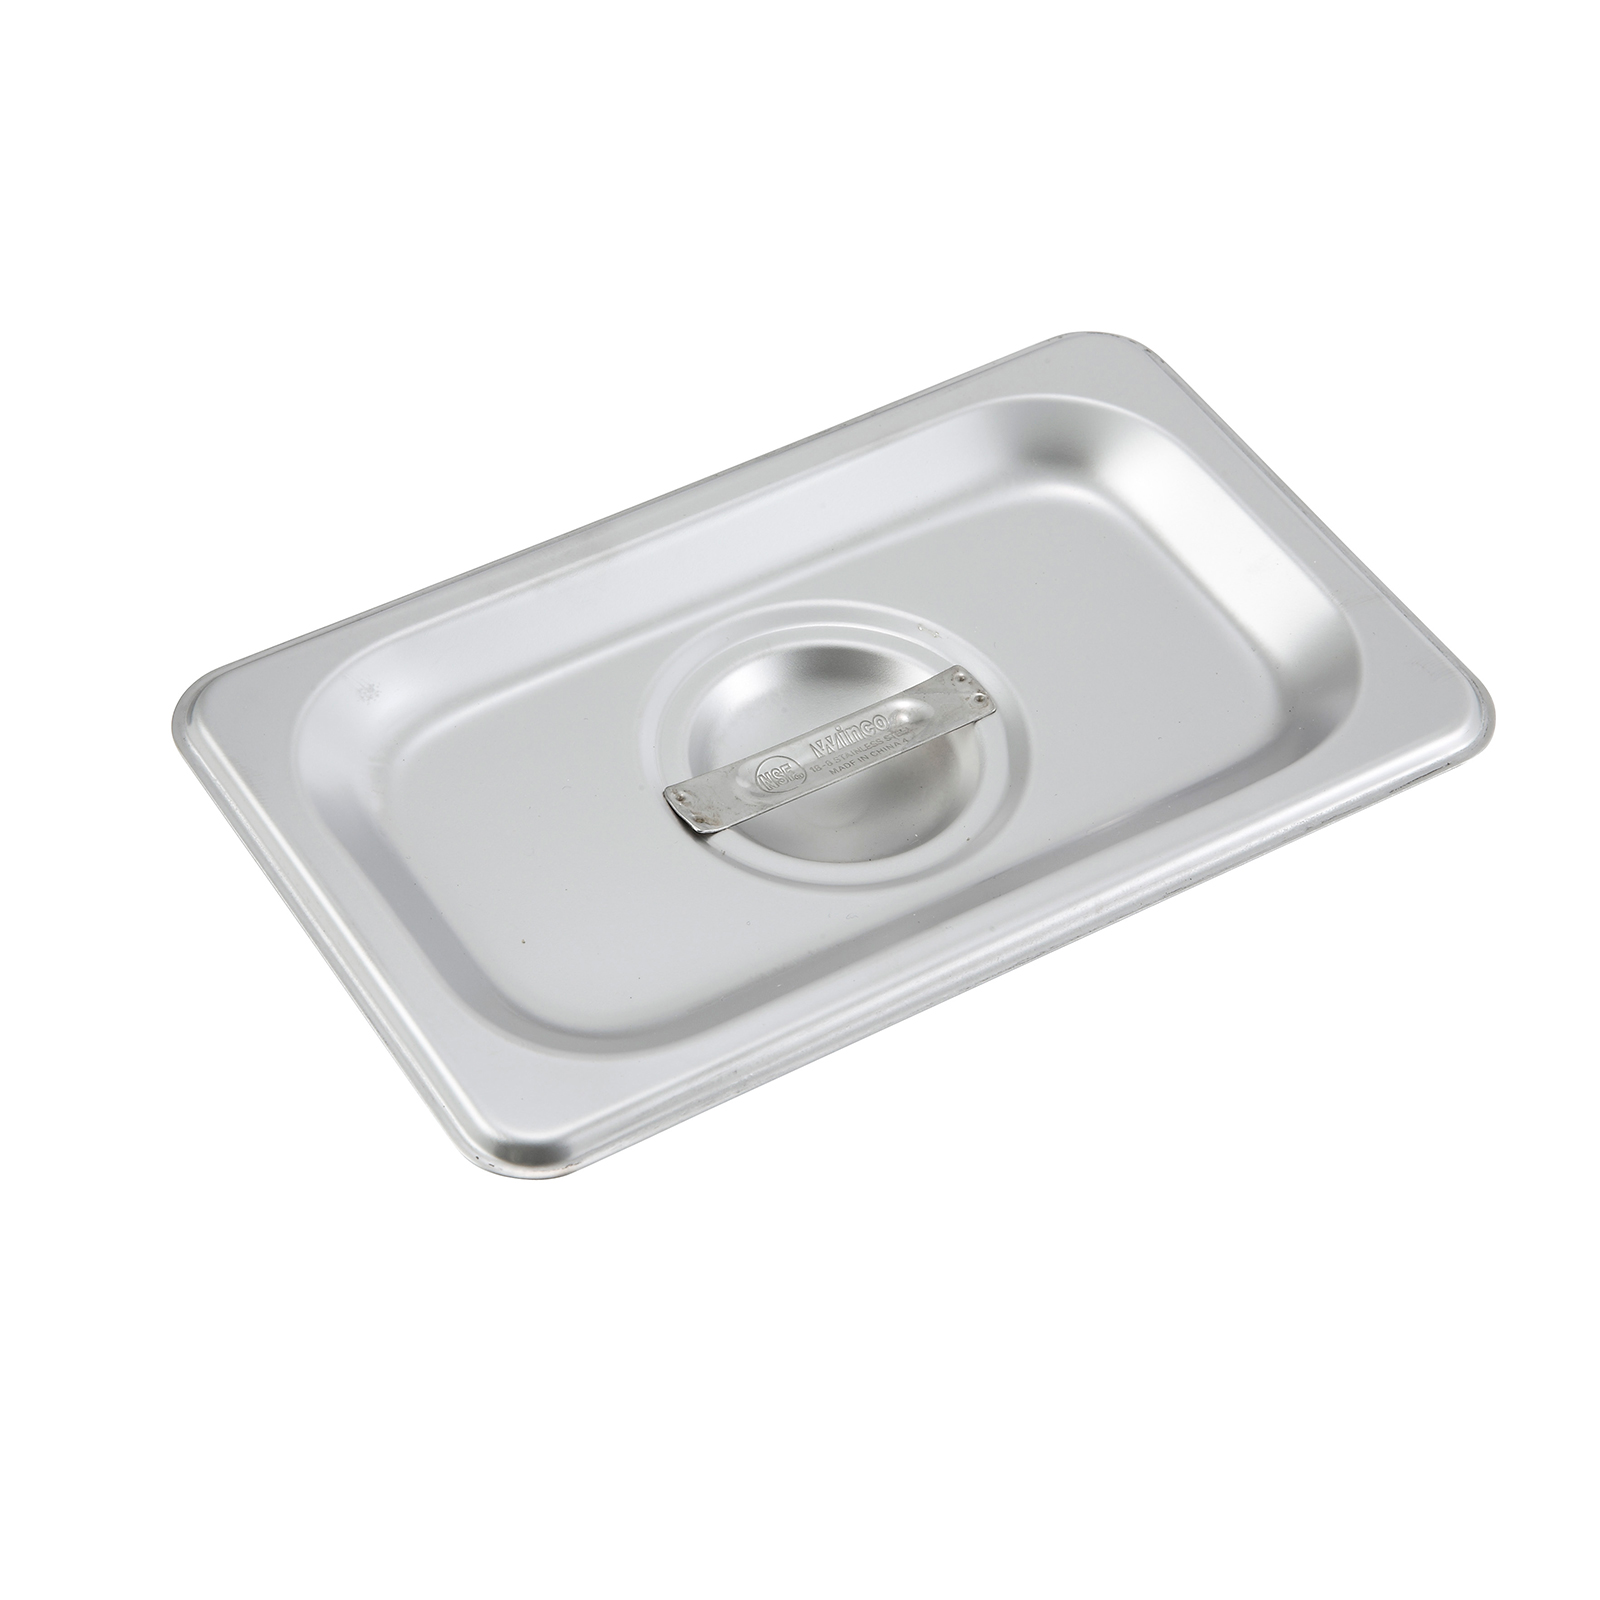 Winco SPSCN steam table pan cover, stainless steel